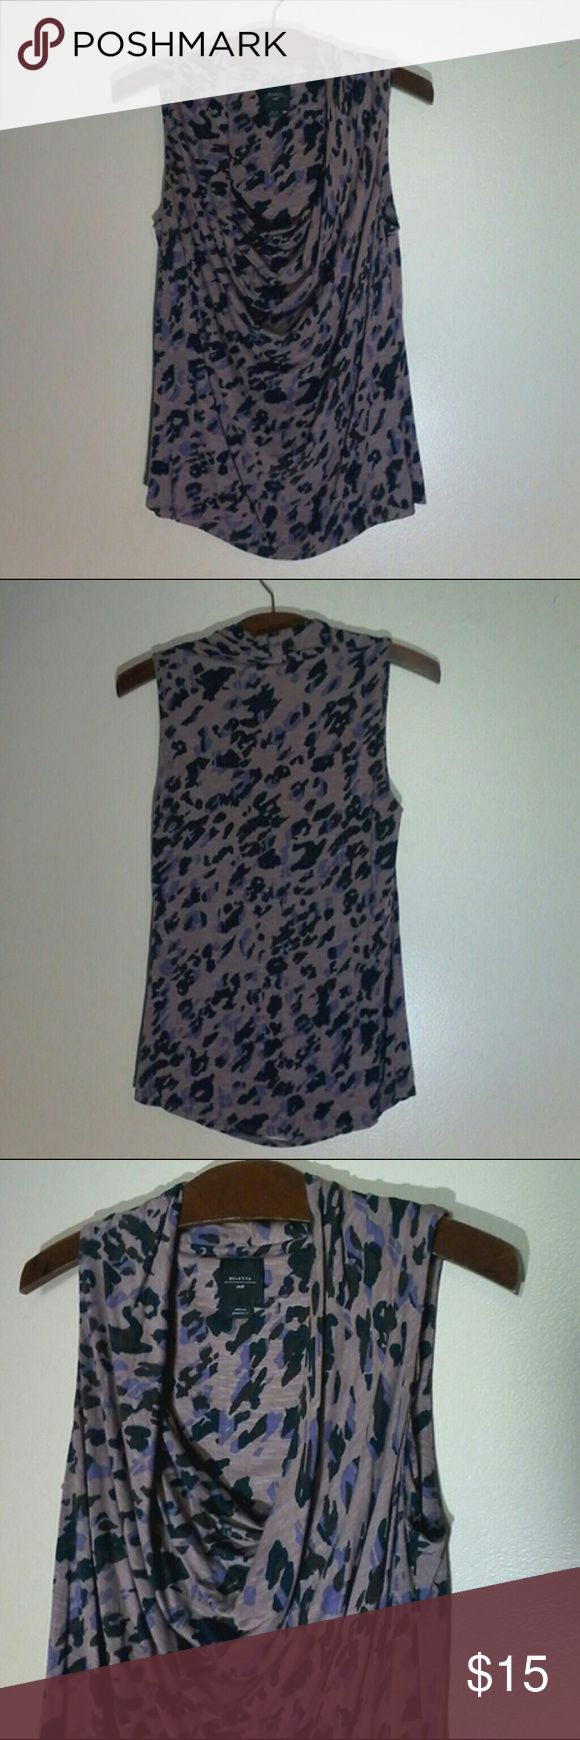 Anthropologie Deletta Purple Leopard Print Top Worn once, top is in great condition!  95% Rayon 5% Spandex Anthropologie Tops